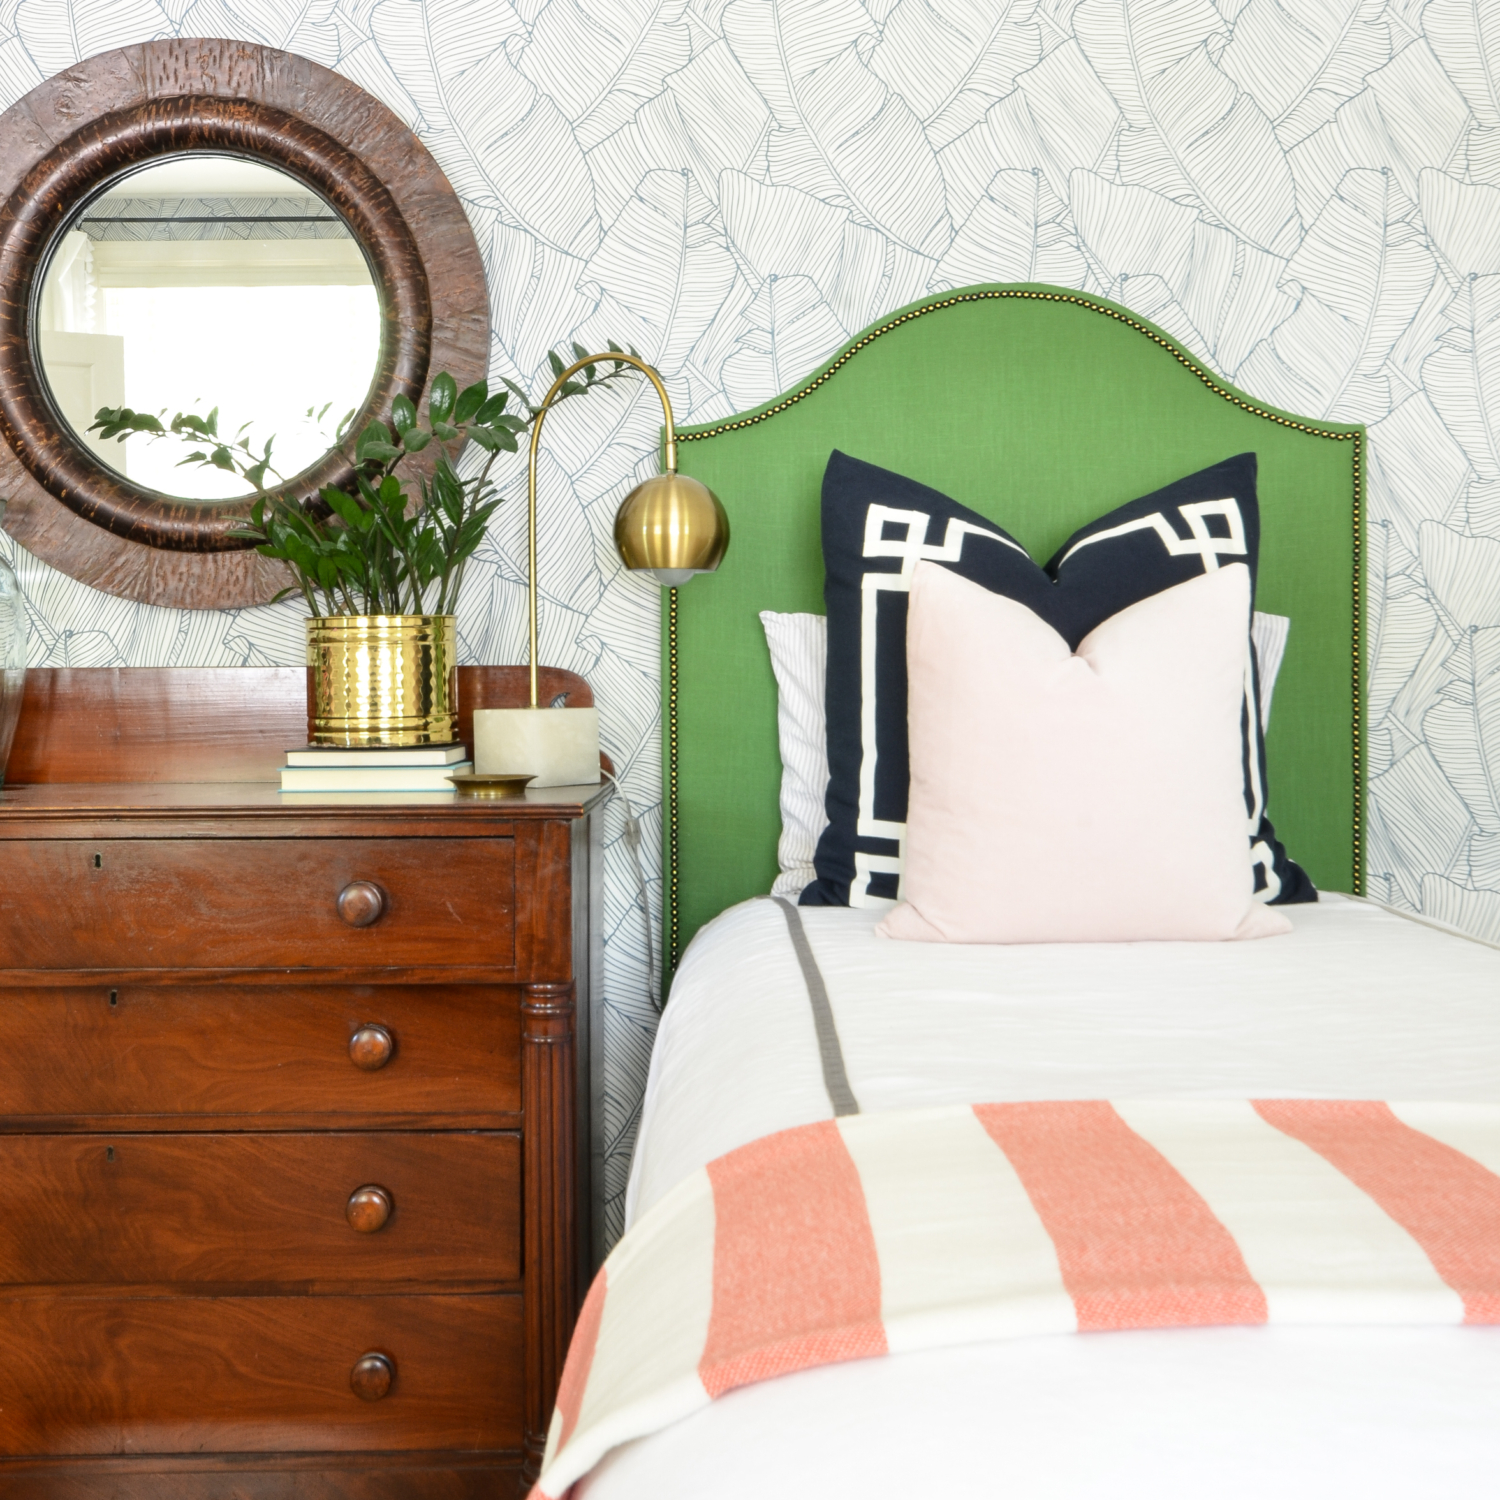 Wallpapered bedroom with twin beds, green upholstered headboards, navy blue, brass, and coral accents